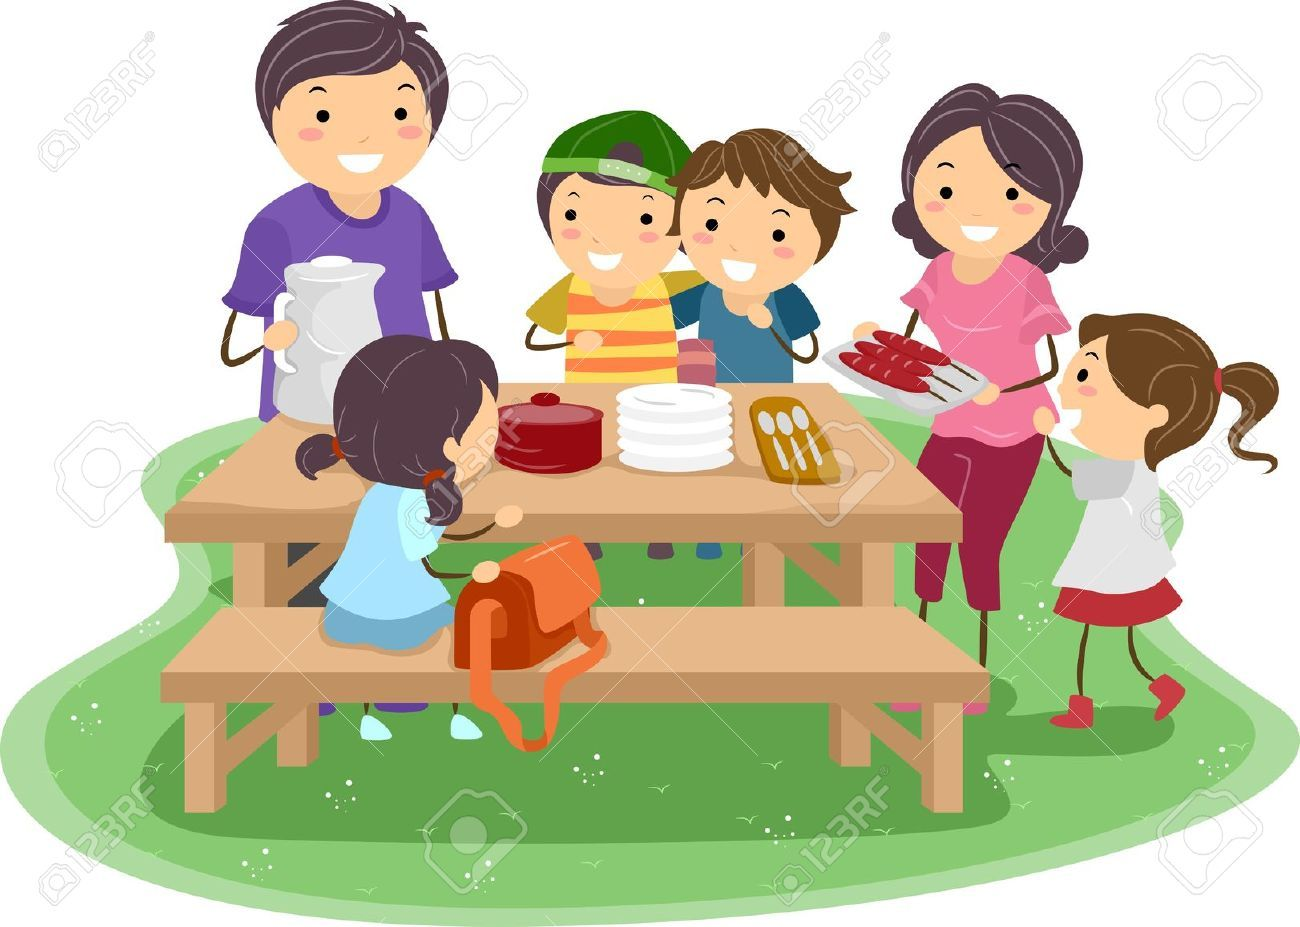 Clipart kids on a picnic image transparent stock Kids picnic clipart 3 » Clipart Portal image transparent stock